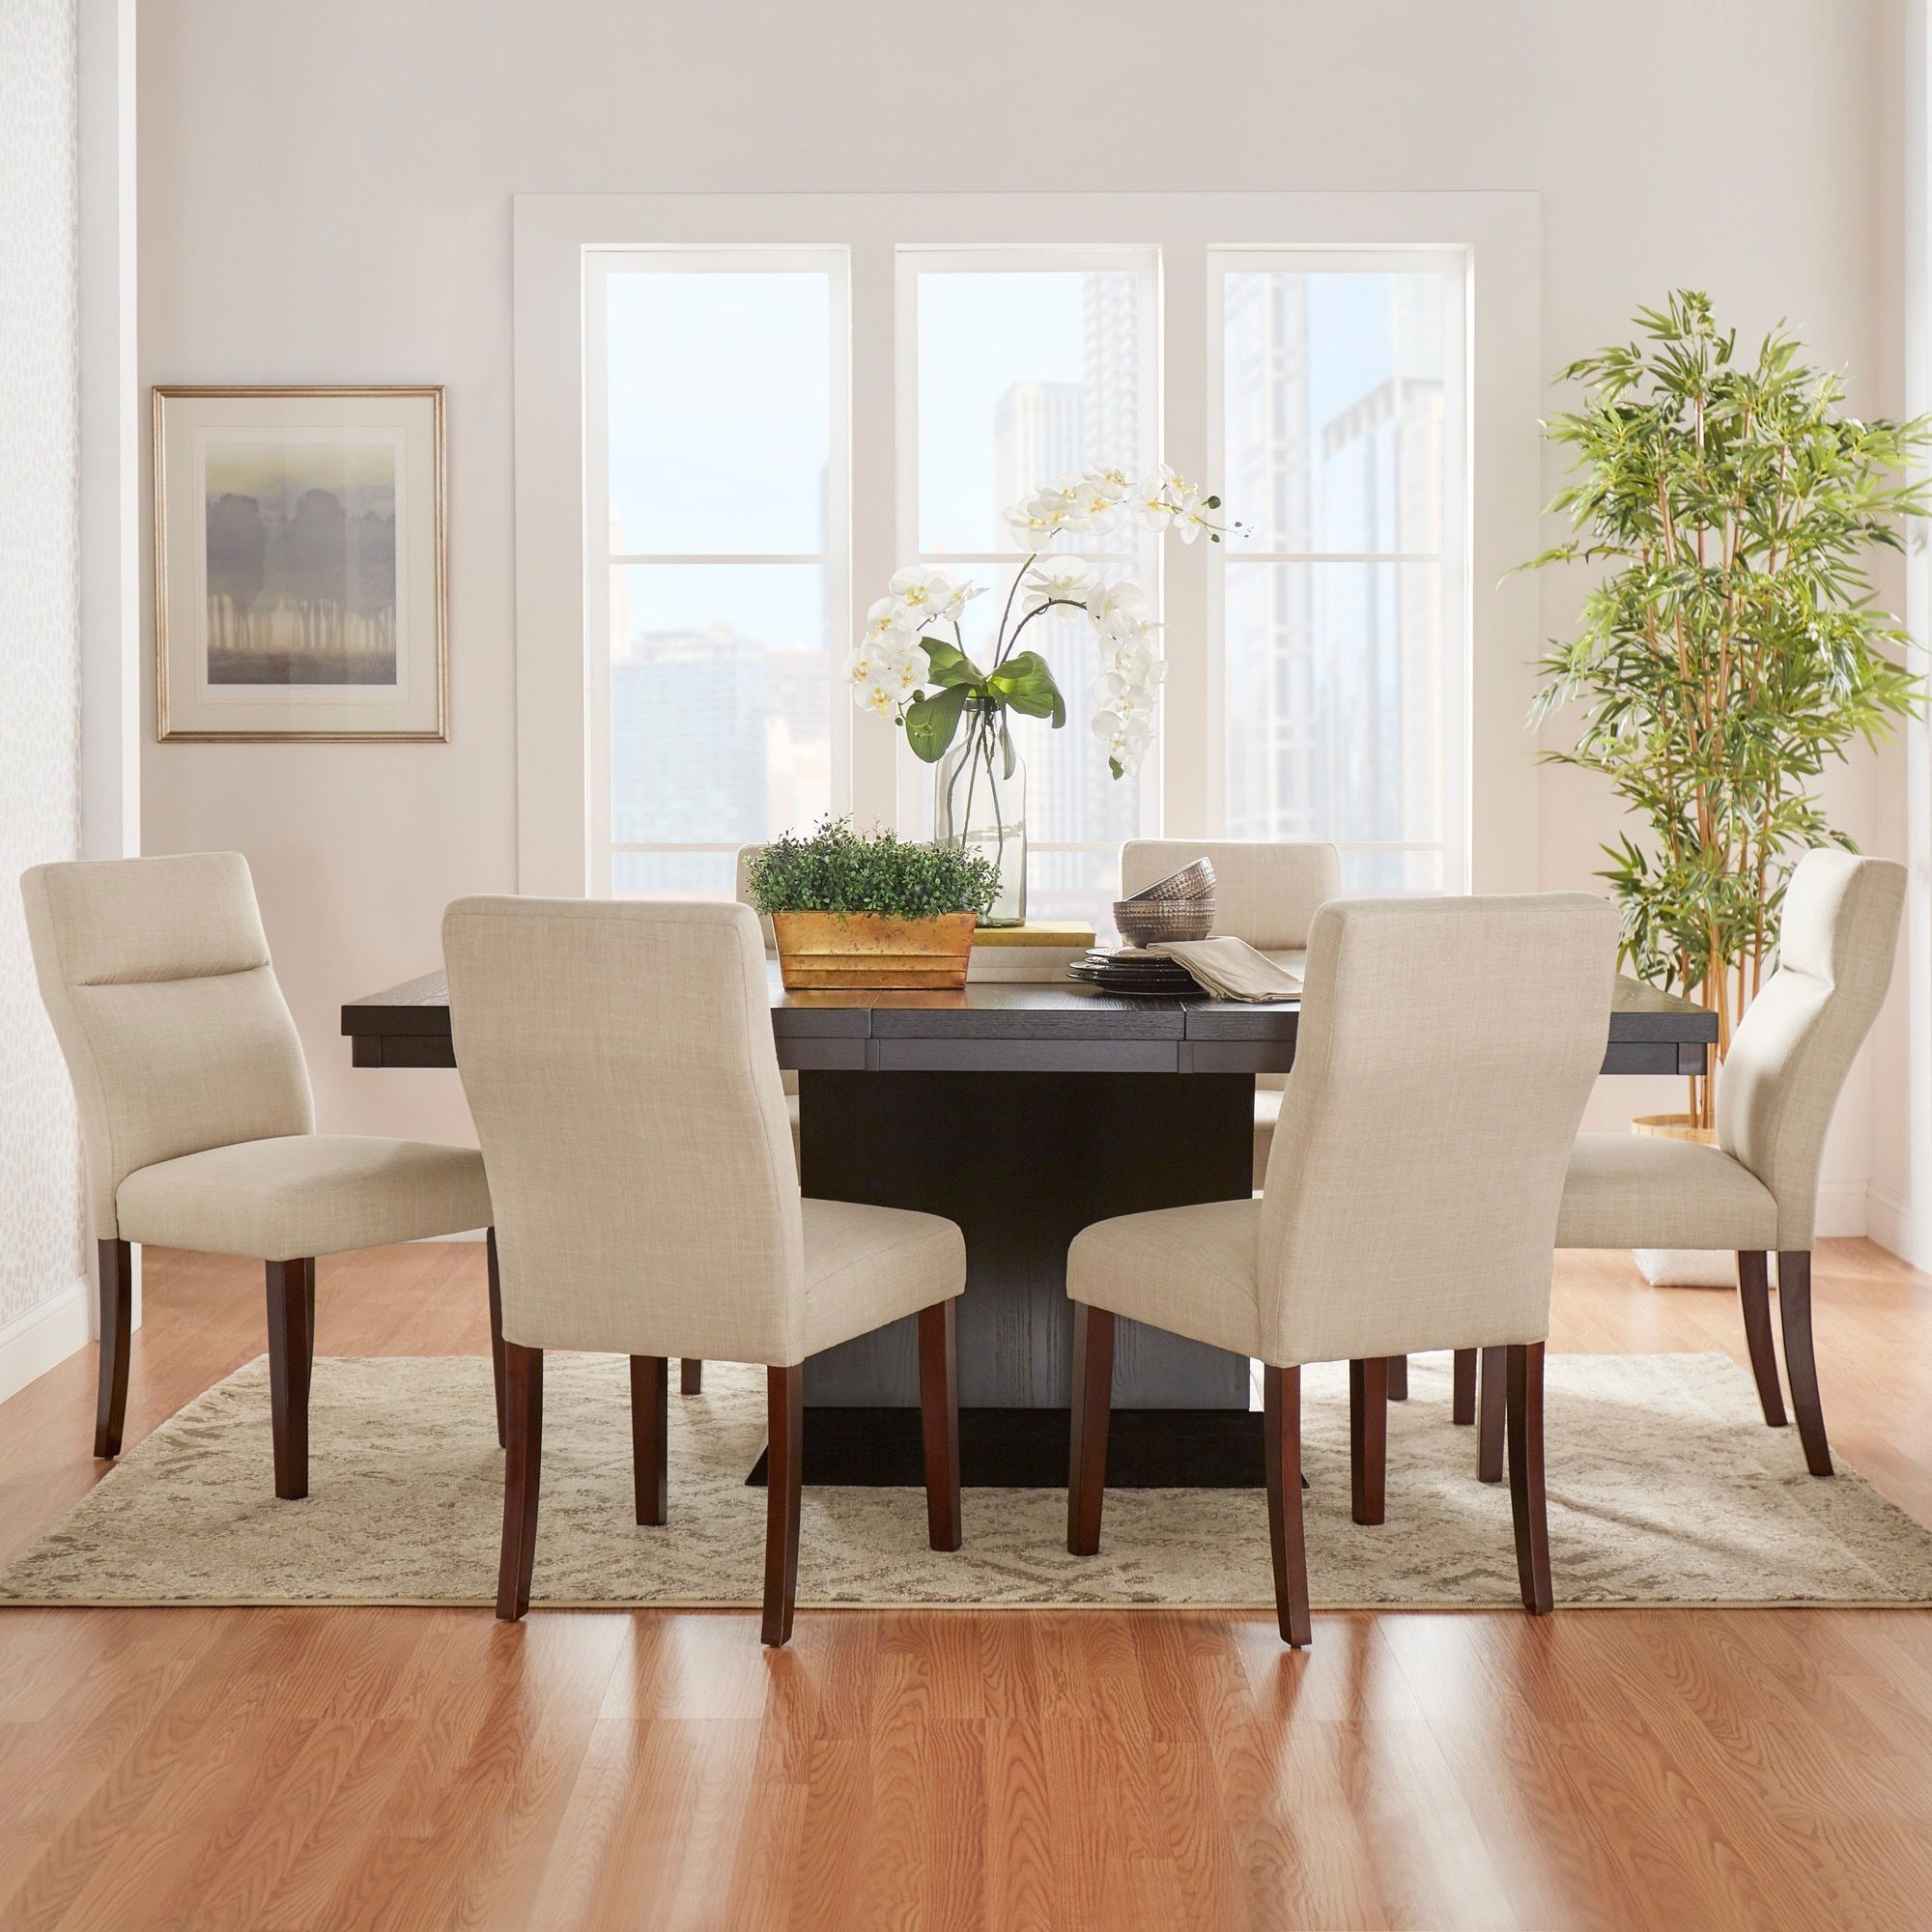 MID-CENTURY LIVING Charles Espresso Contemporary Dining Set iNSPIRE Q Modern  by iNSPIRE Q